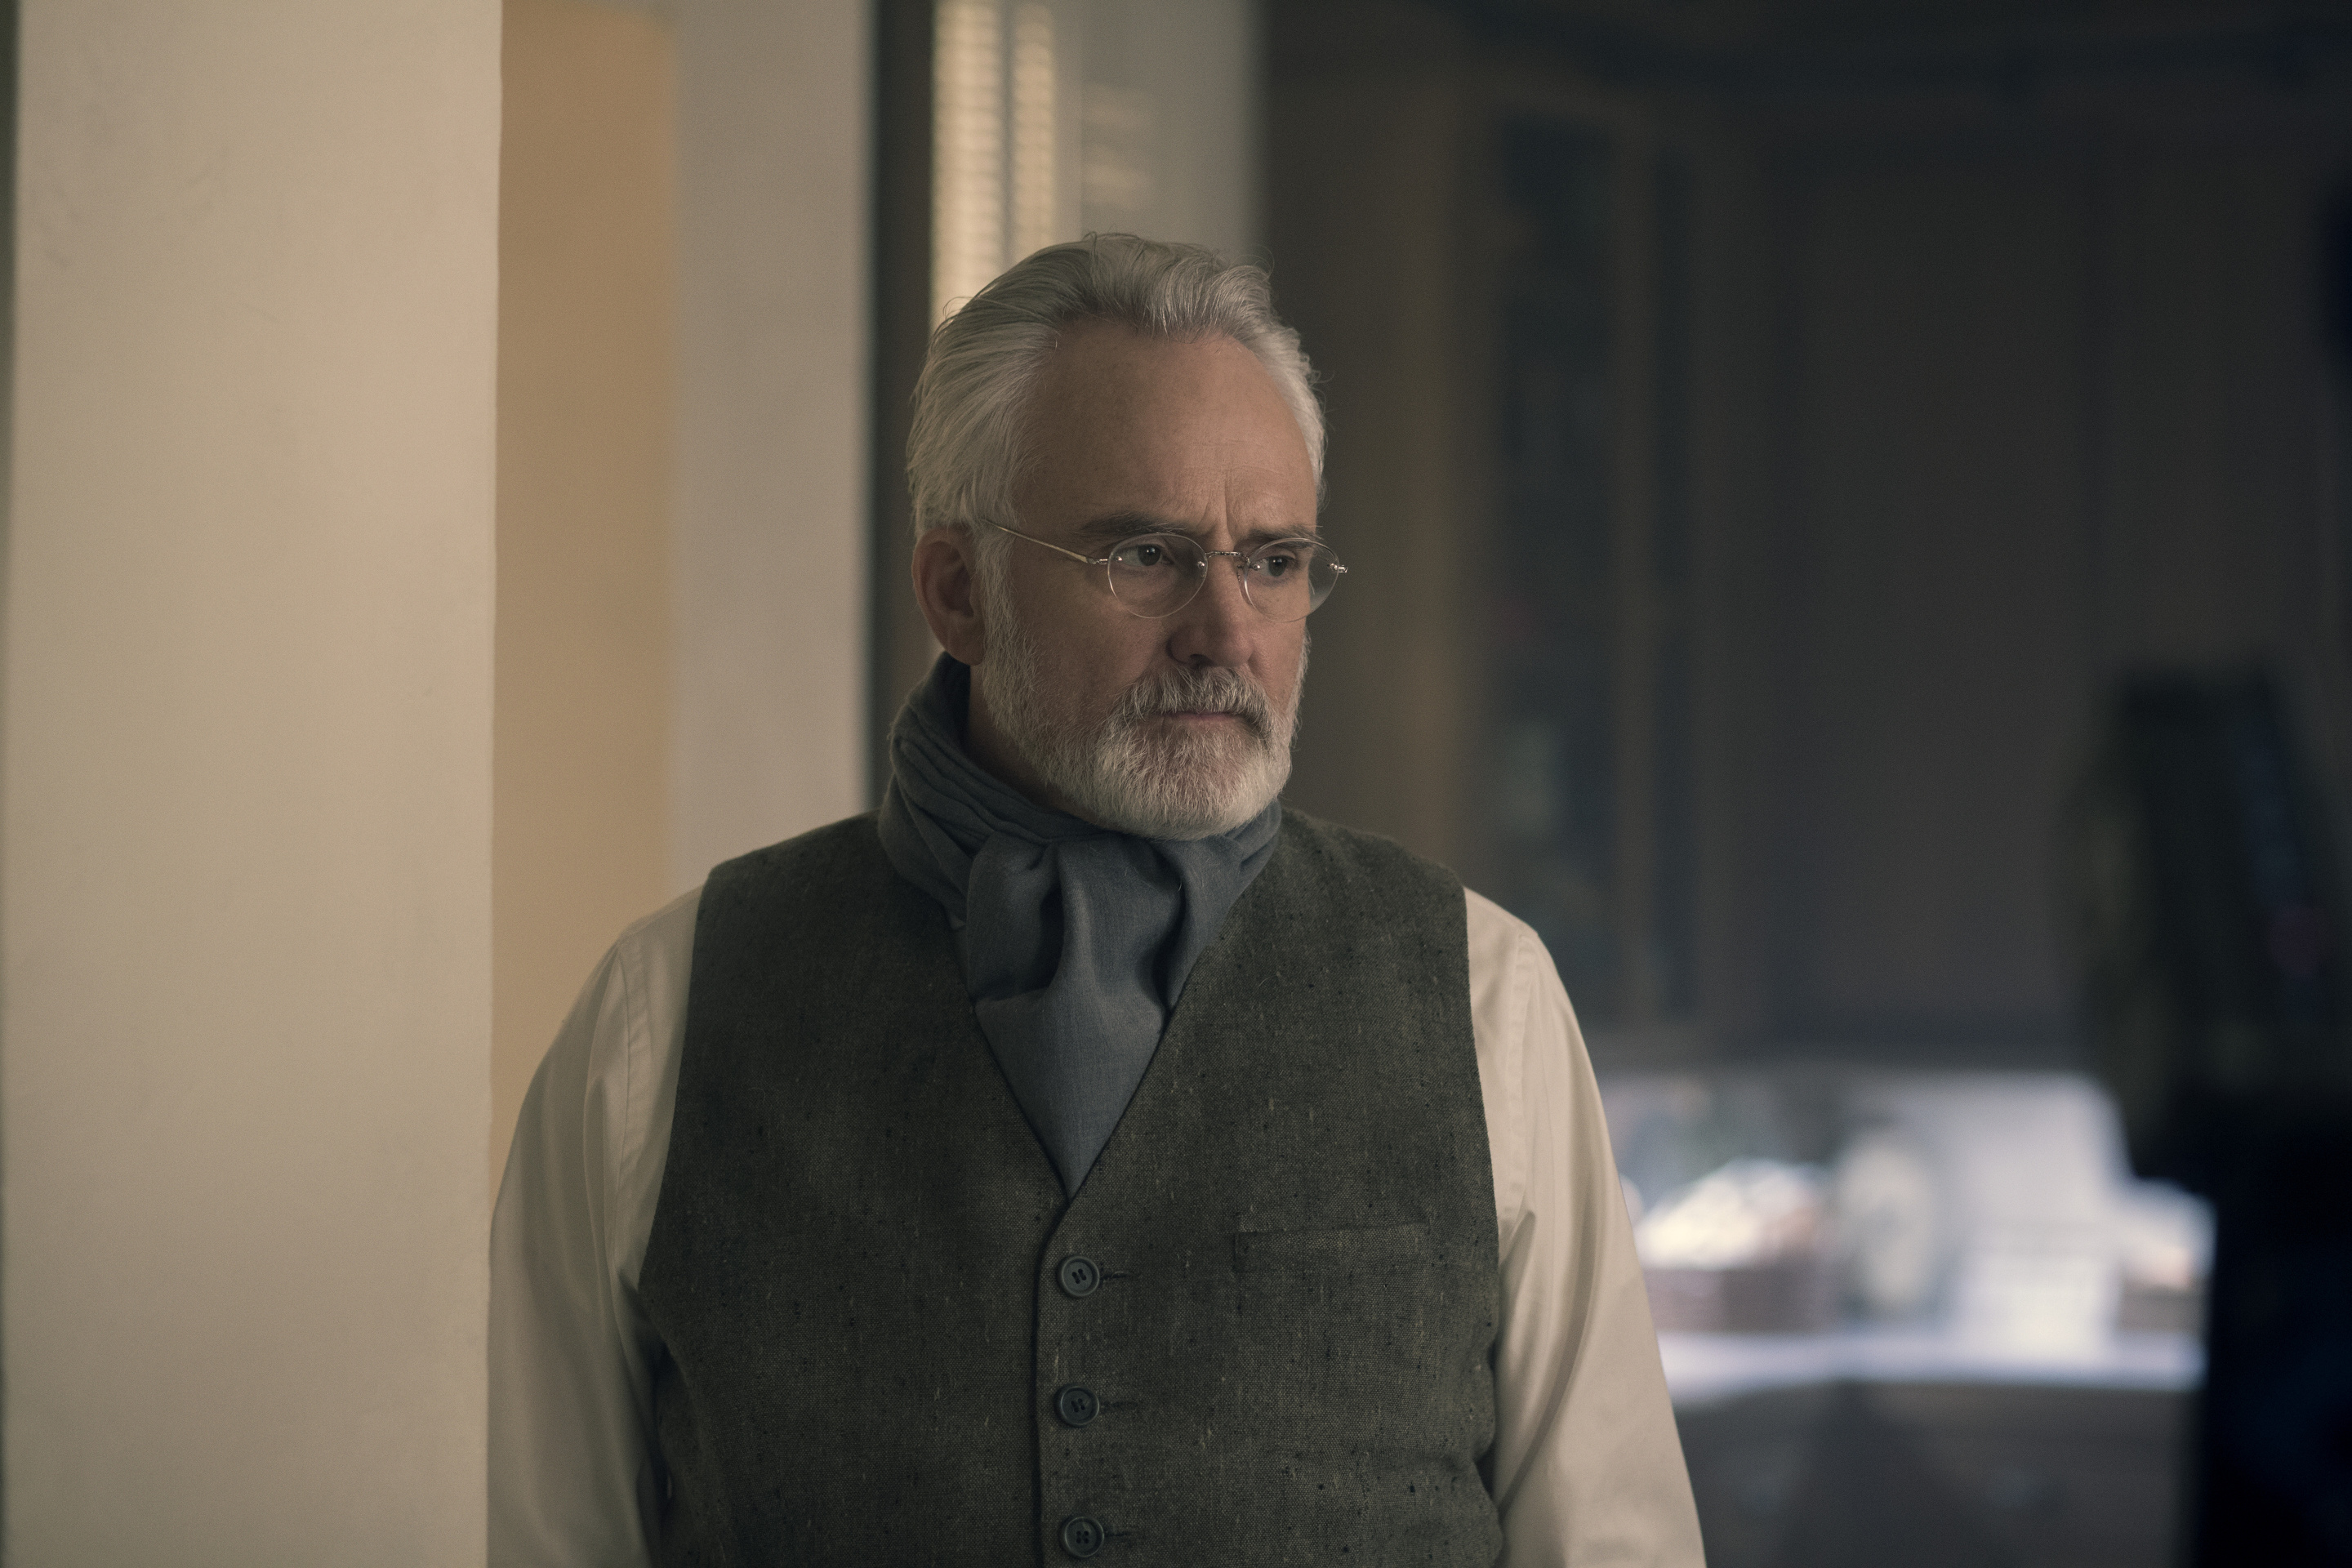 Handmaid's Tale' Season 3 Episode 12 Spoilers: What Will Lawrence Do